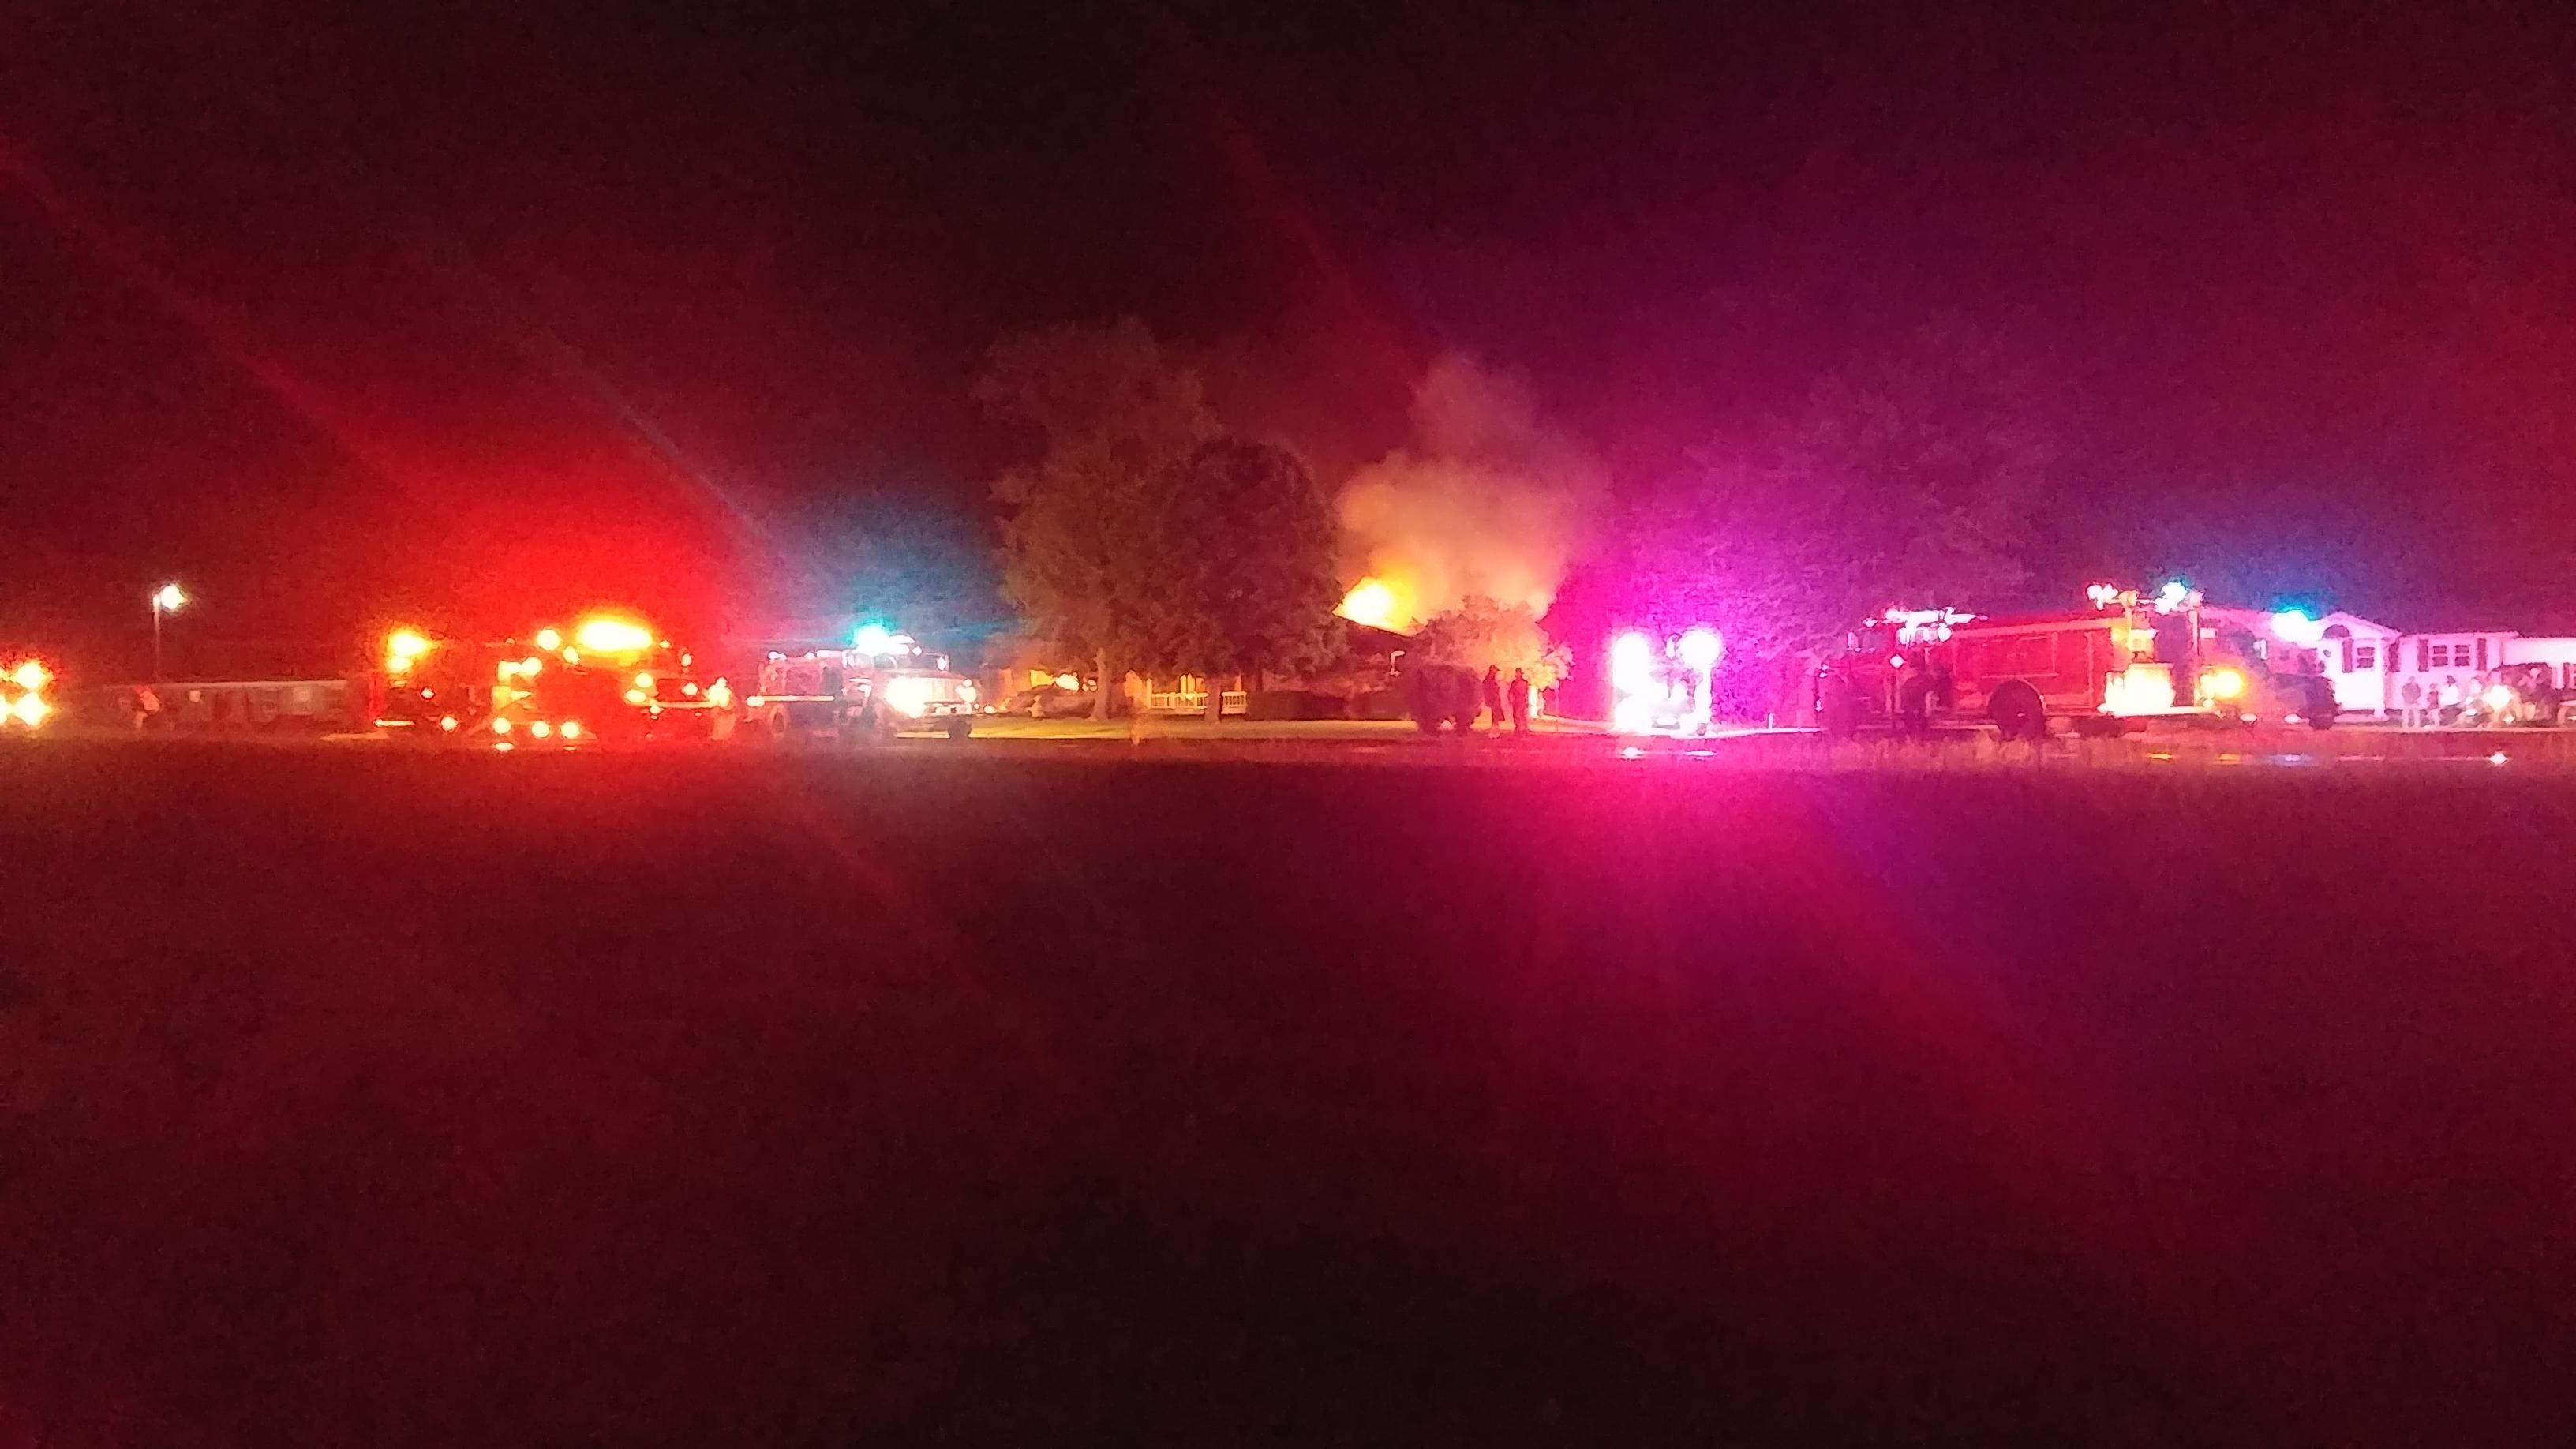 A structure fire broke out just before 10:30 p.m., Monday night at the Ramsey Jones Mobile Home Park in LaGrange, MO.